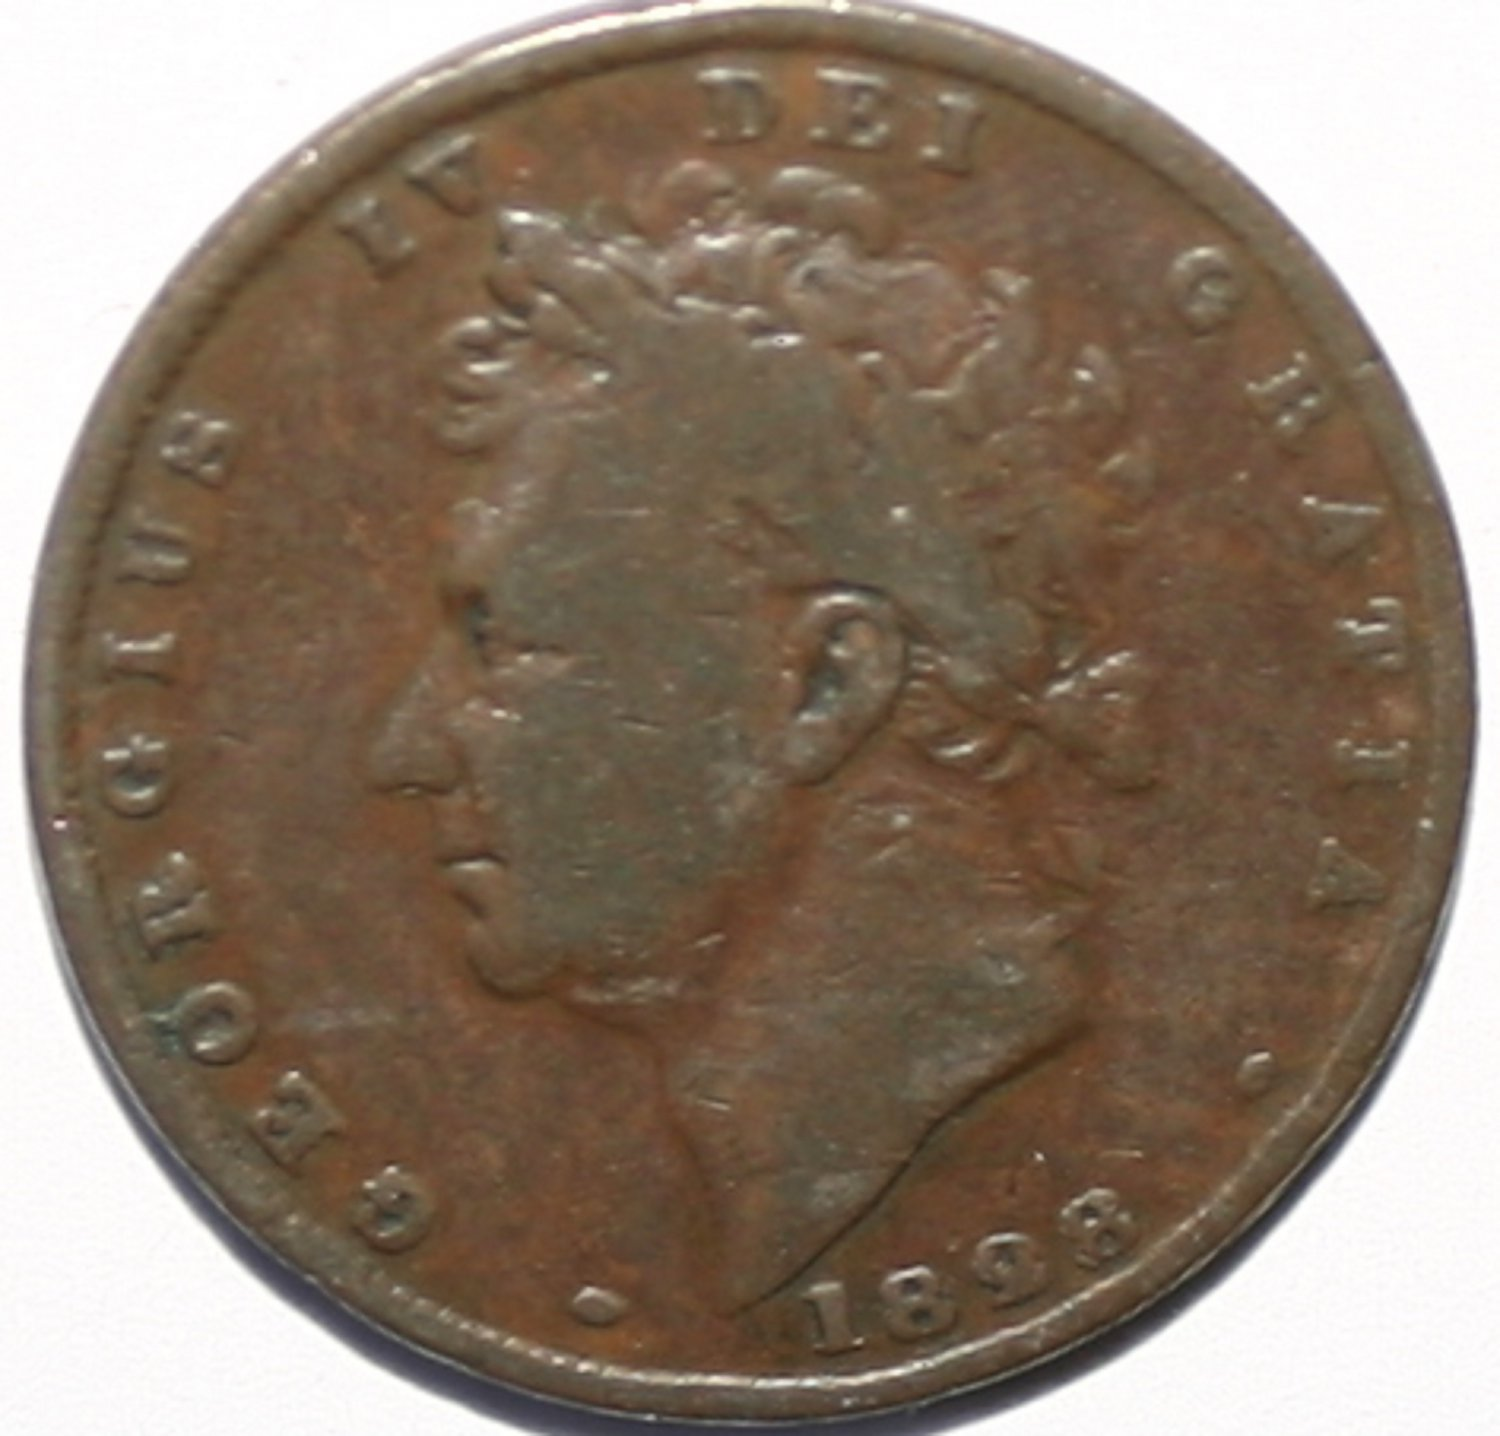 King George IV 1828 Farthing Coin Rare Collectors Item